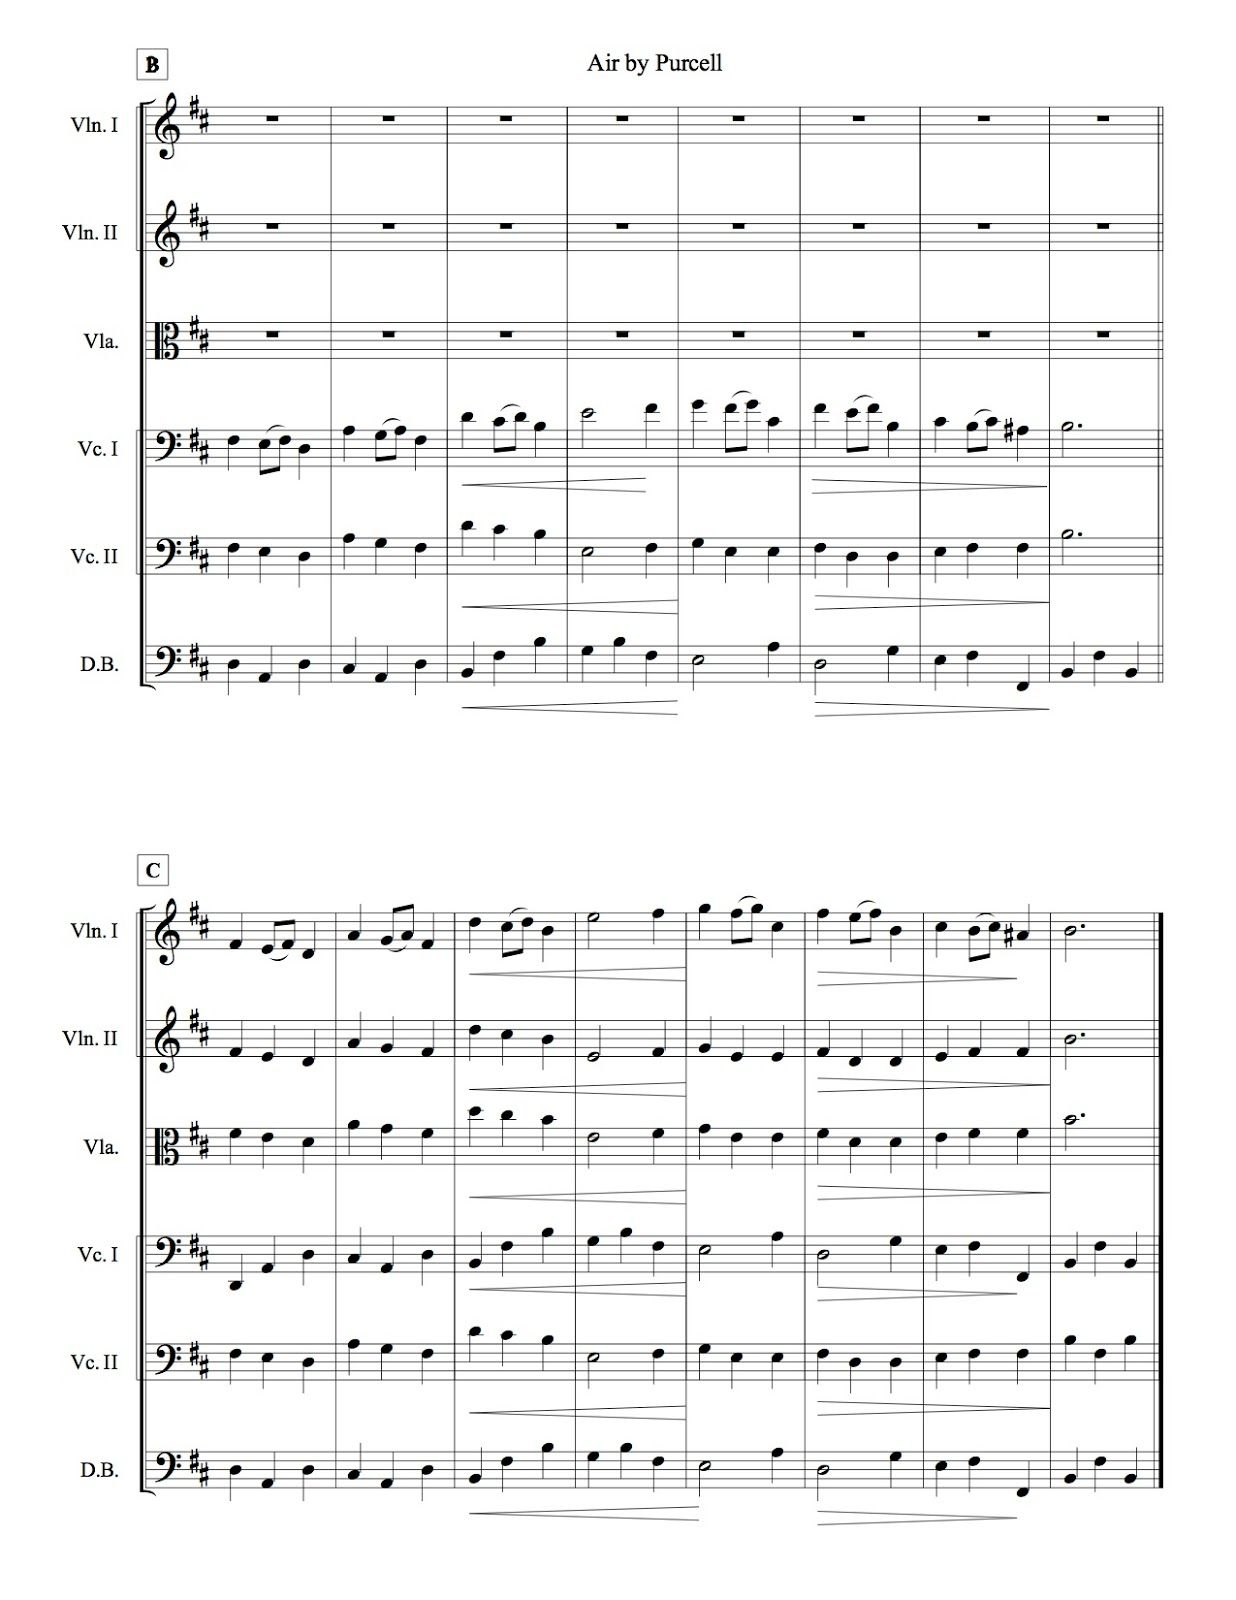 Free sheet music, arrangements, resources for string players